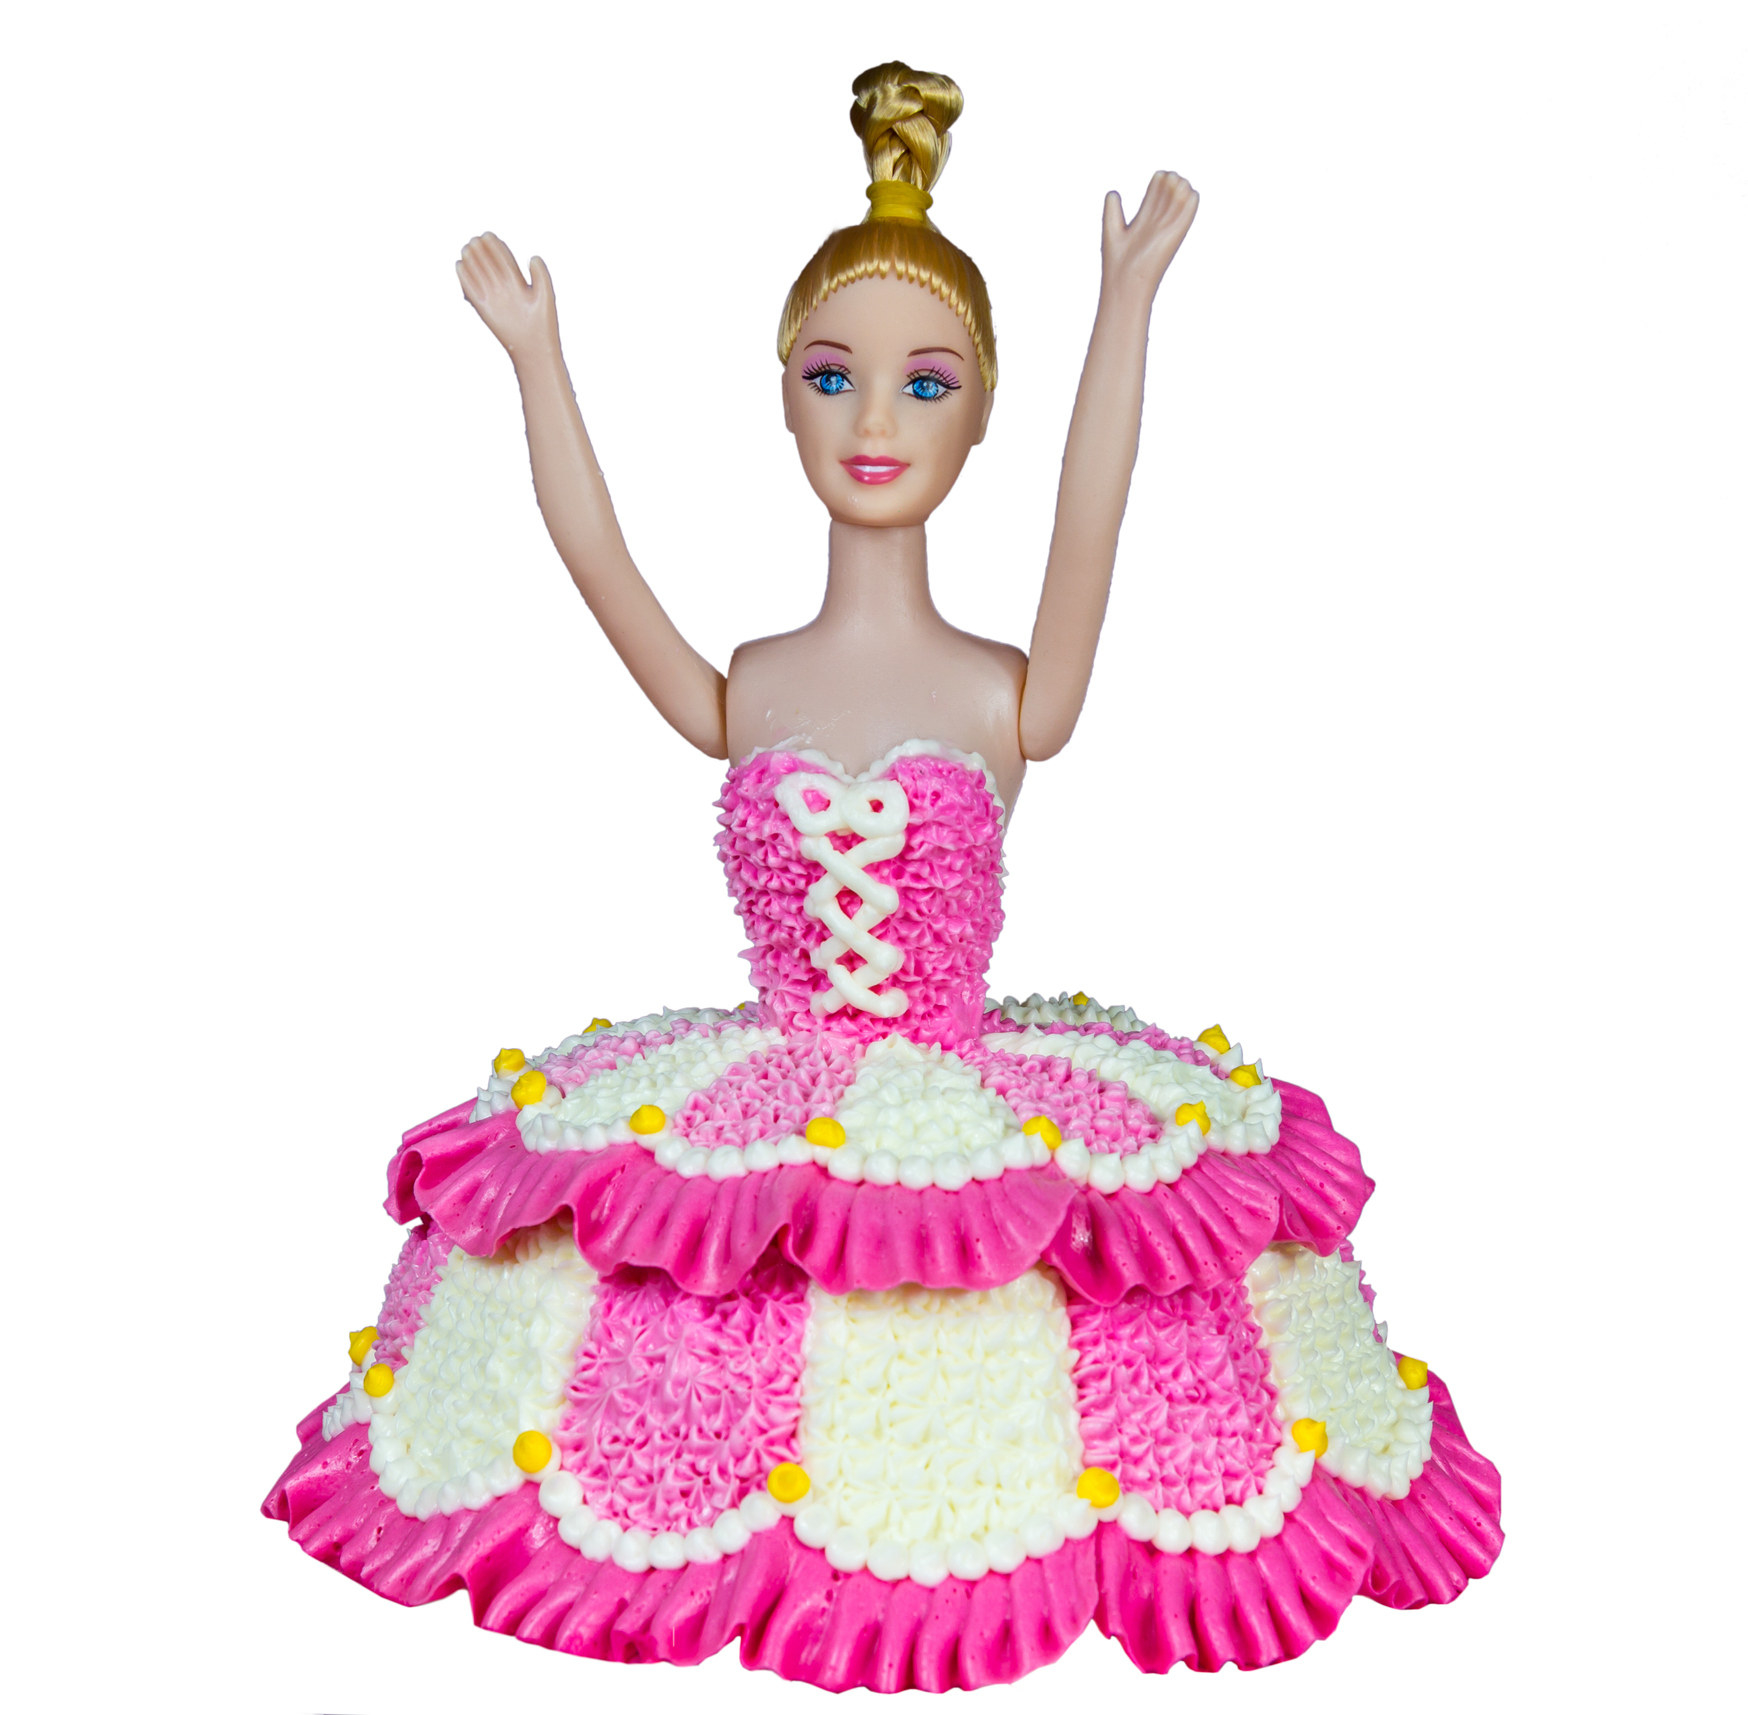 A photo of a Barbie-esque doll with a pink and cream-colored dress made of frosting